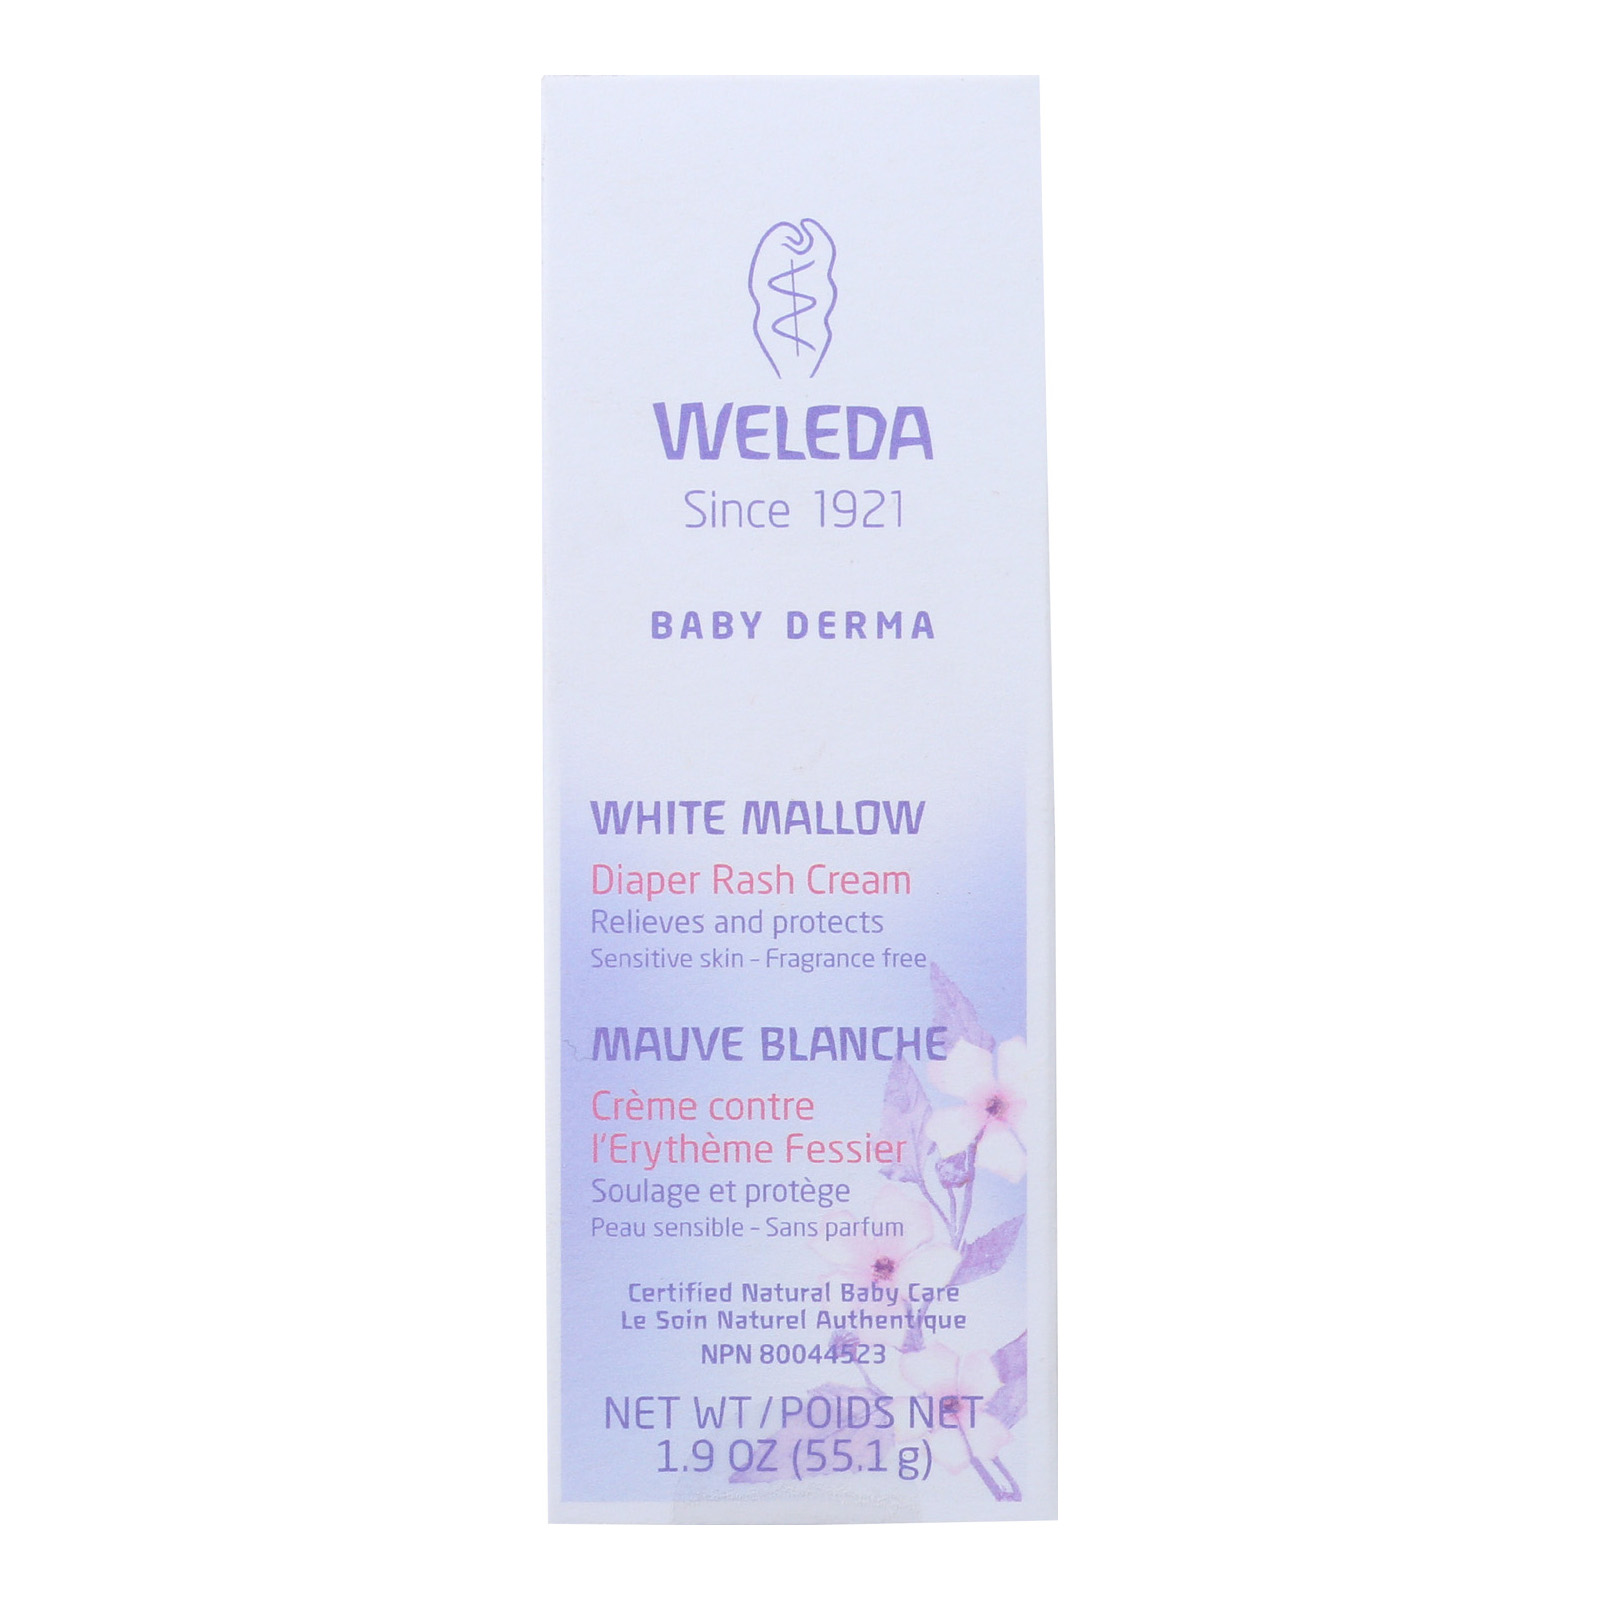 Weleda Diaper Rash Cream - Baby Derma - White Mallow - 1.9 Oz